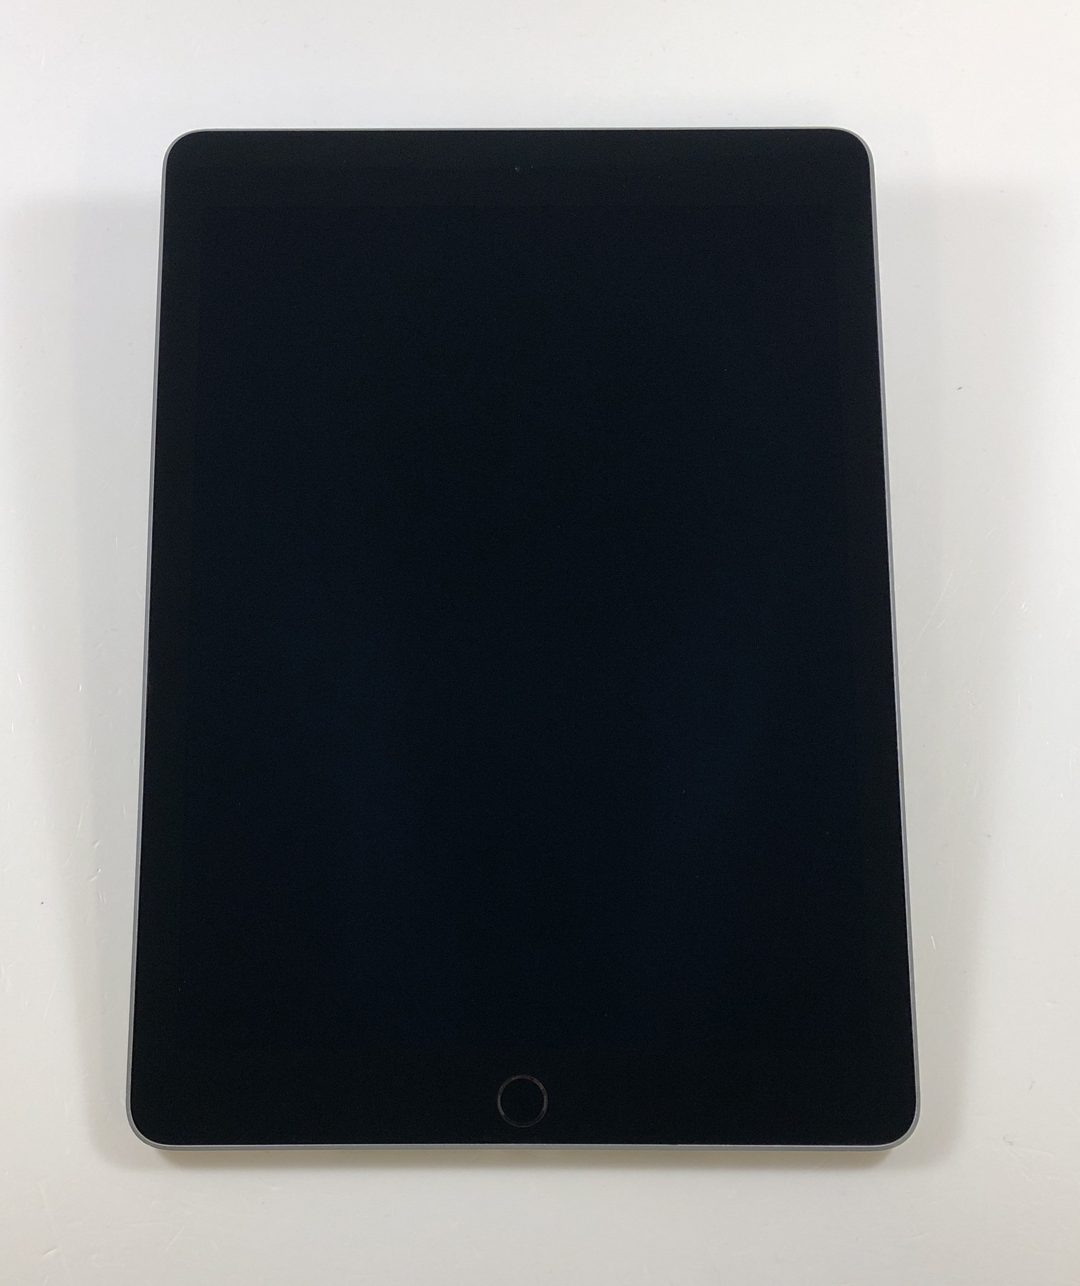 iPad Air 2 Wi-Fi 64GB, 64GB, Space Gray, Kuva 1